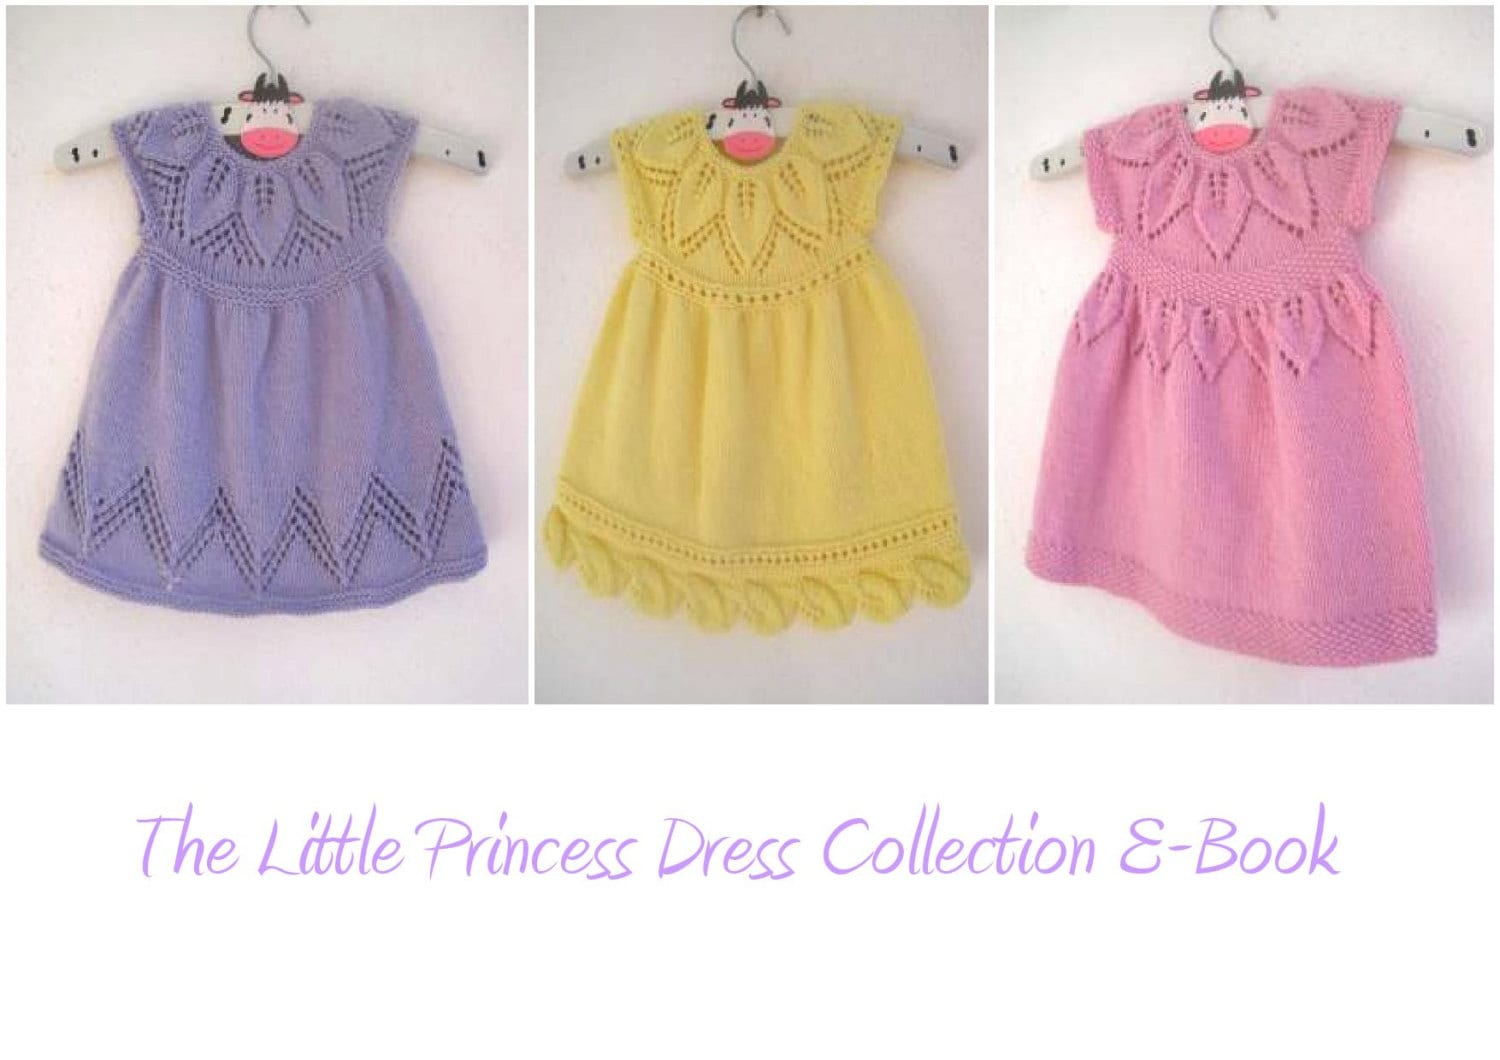 The Little Princess Dress Collection Knitting Pattern E-Book